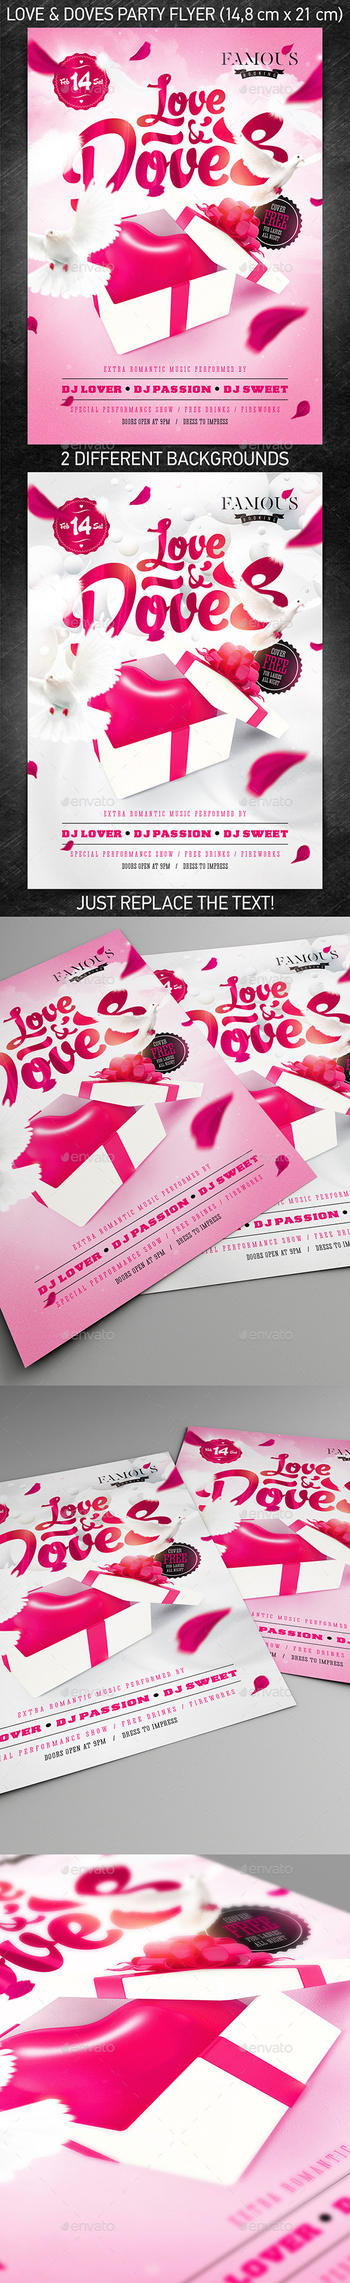 Love and Doves Party Flyer, PSD Template by 4ustudio